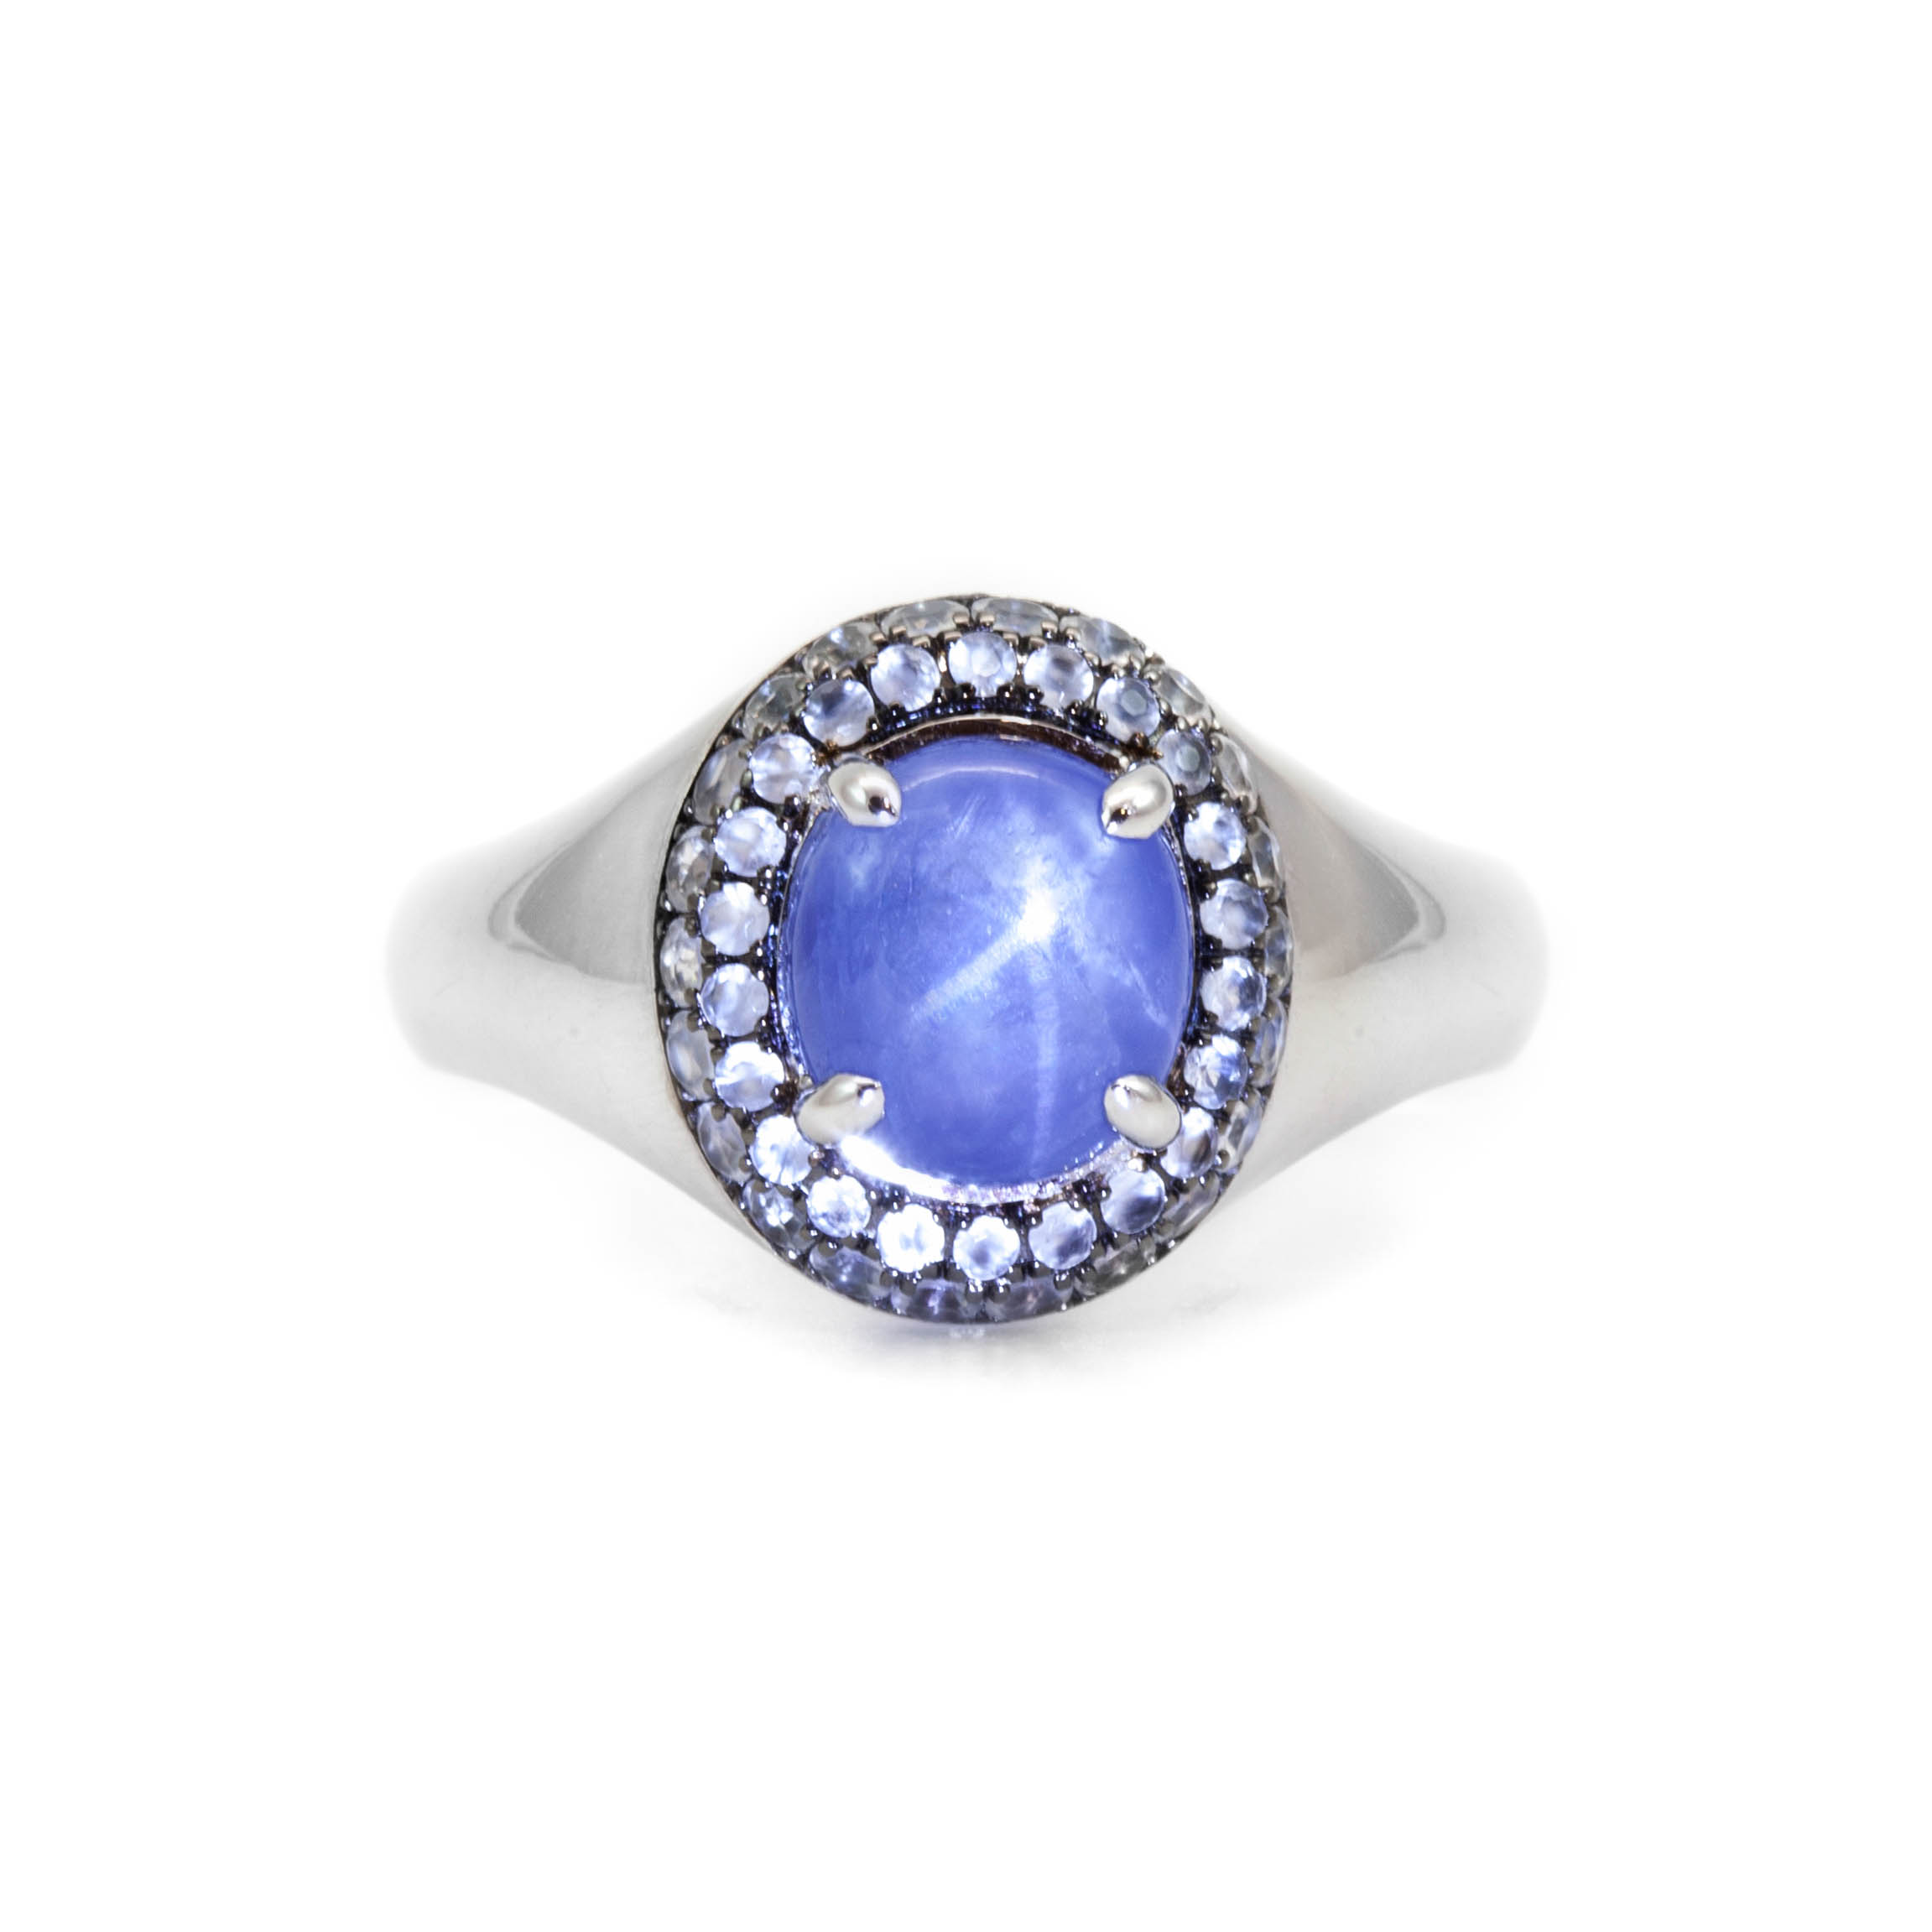 mm three colored ring sapphire gemstones your diamonds the setting platinum best article in engagement blue international unheated stones x stone rings a side for ct round contemporary